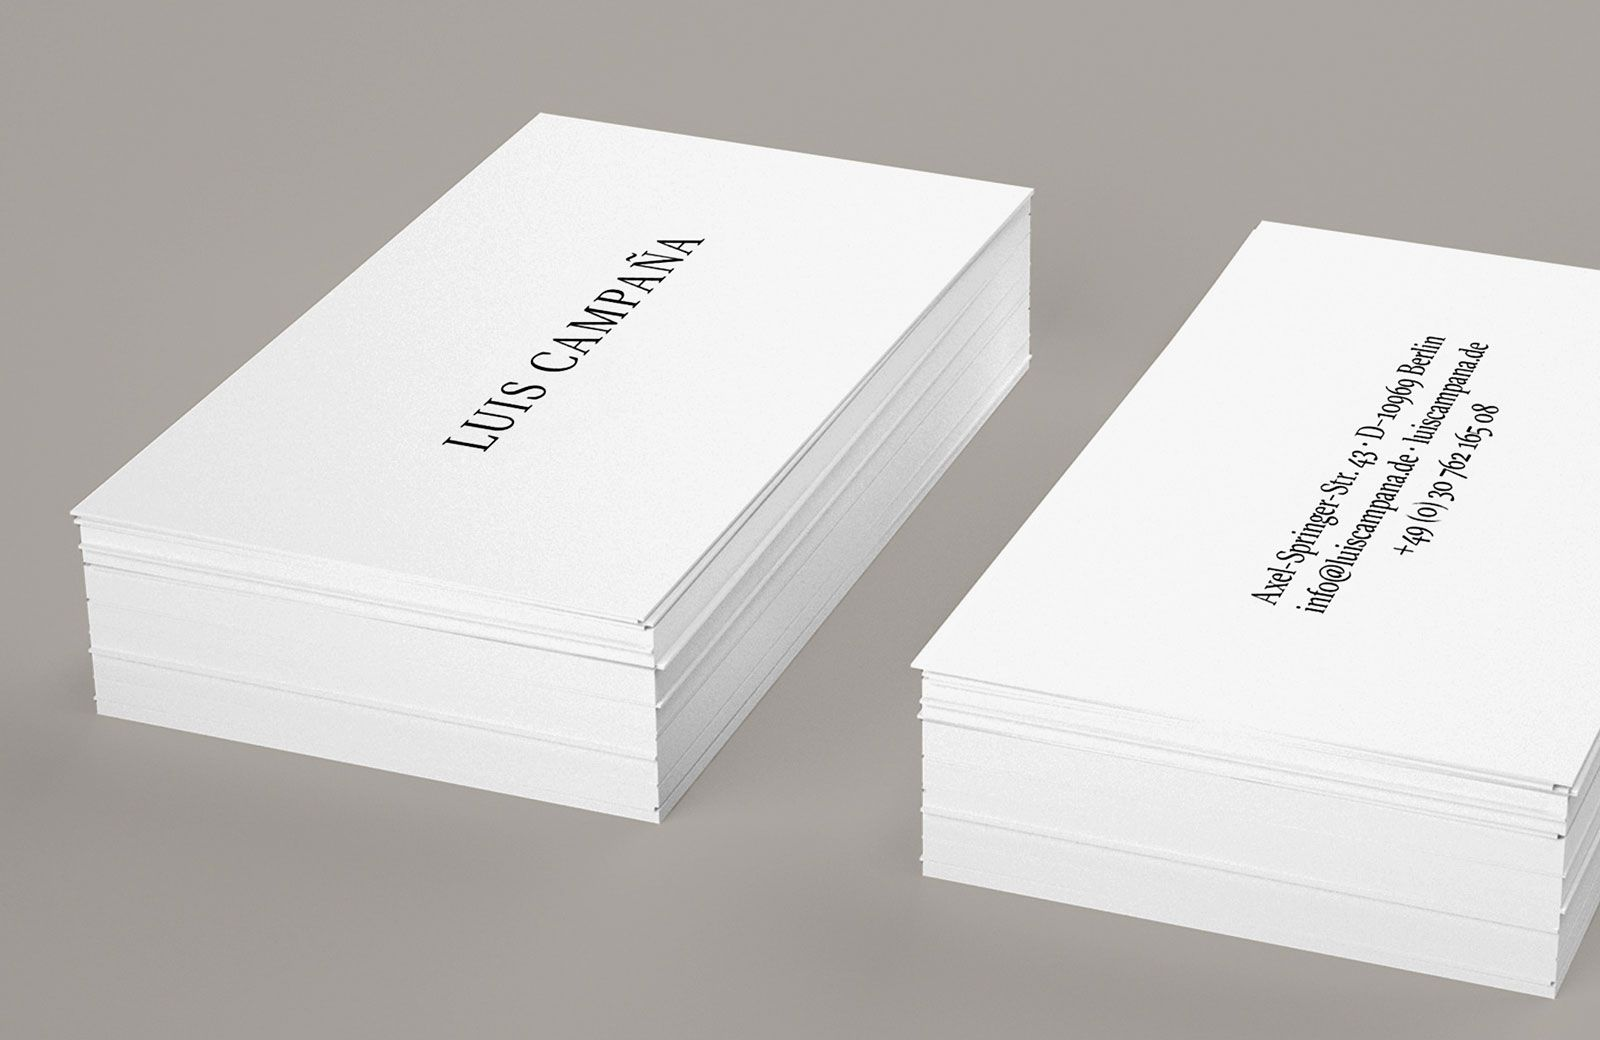 Blog grilli type independent swiss type foundry free trial business cards blog grilli type independent swiss type foundry free trial fonts colourmoves